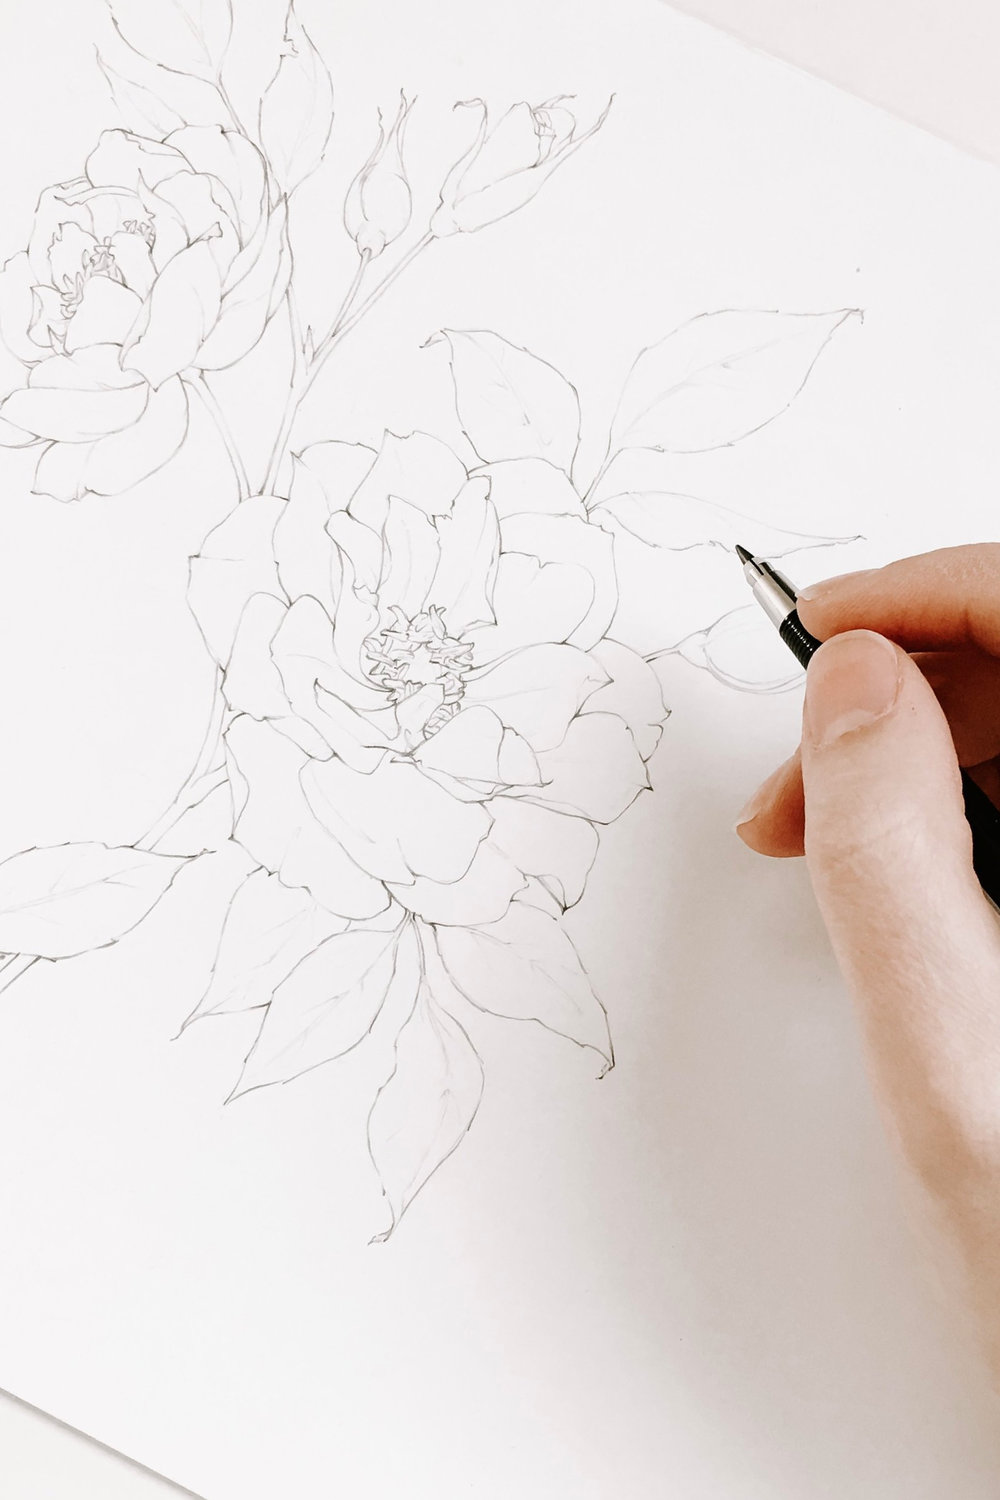 Join me on this 5 day journey to master flower drawing! I'm going to teach you how to draw realistic flowers by sharing 5 of my favorite secrets with you through video tutorials and a supportive community! #floraldrawingchallenge #howtodrawflowers #drawingtutorials